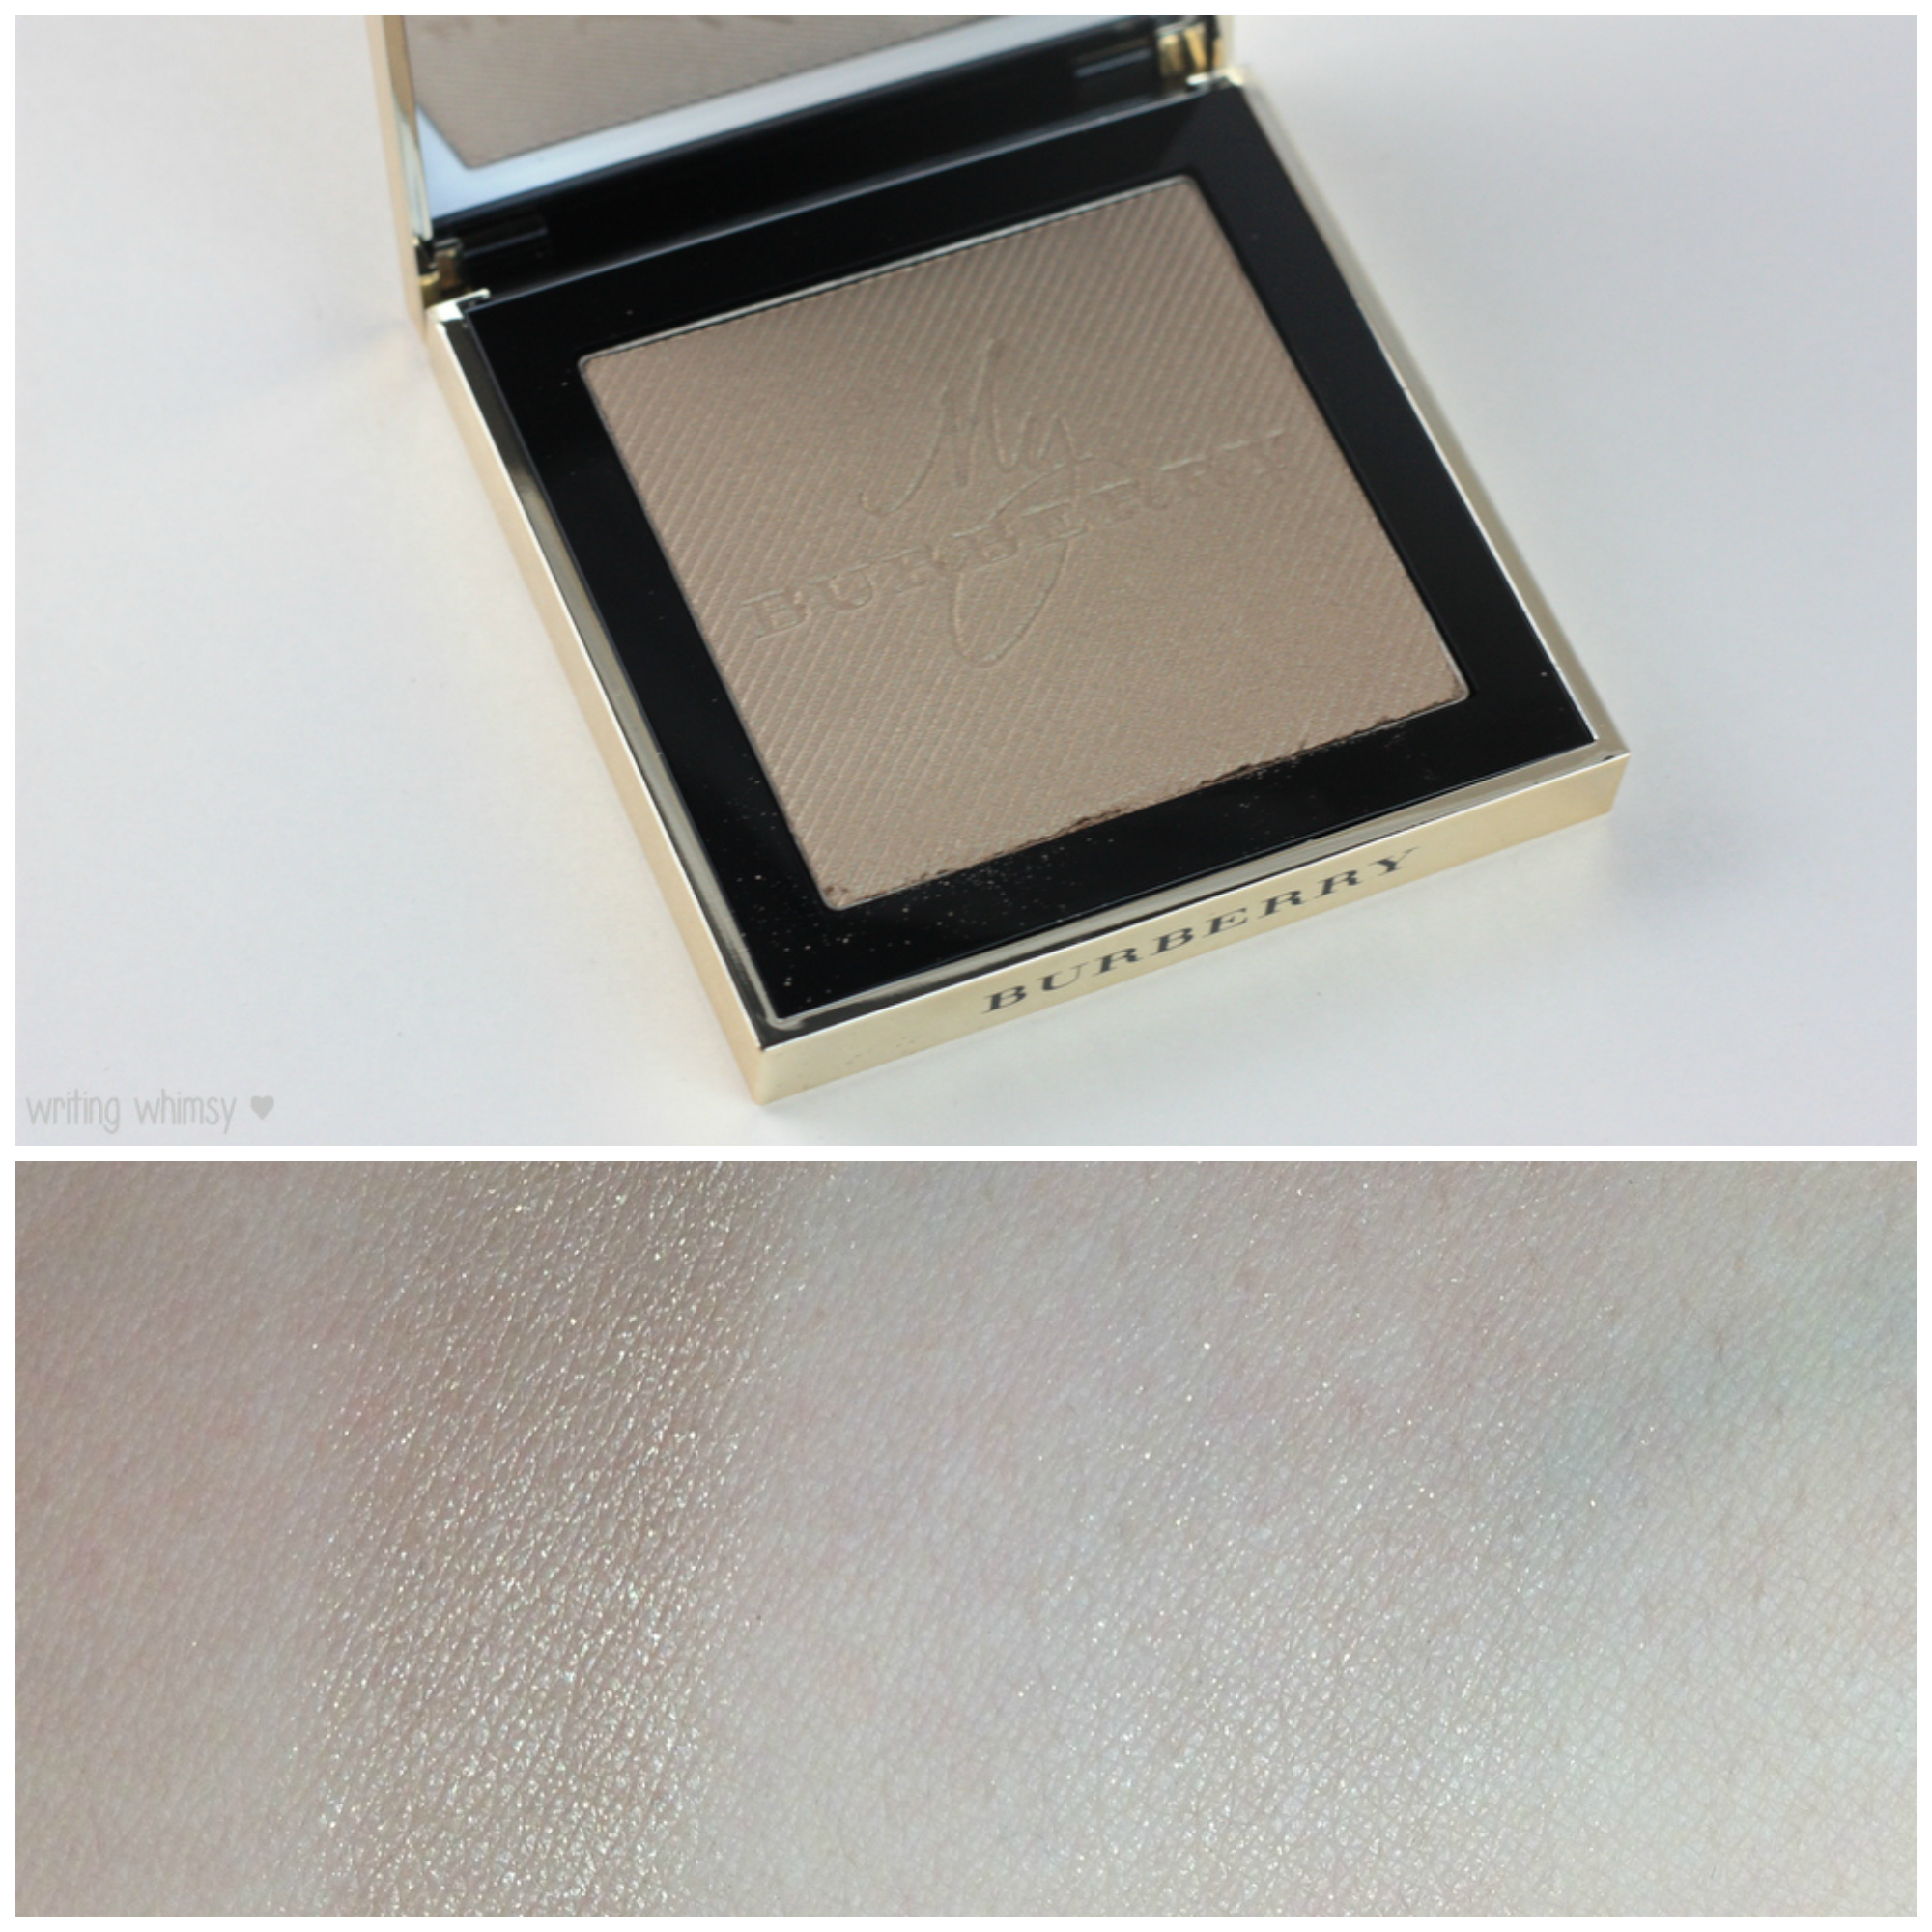 Burberry Gold Glow Fragranced Luminising Powder Collage